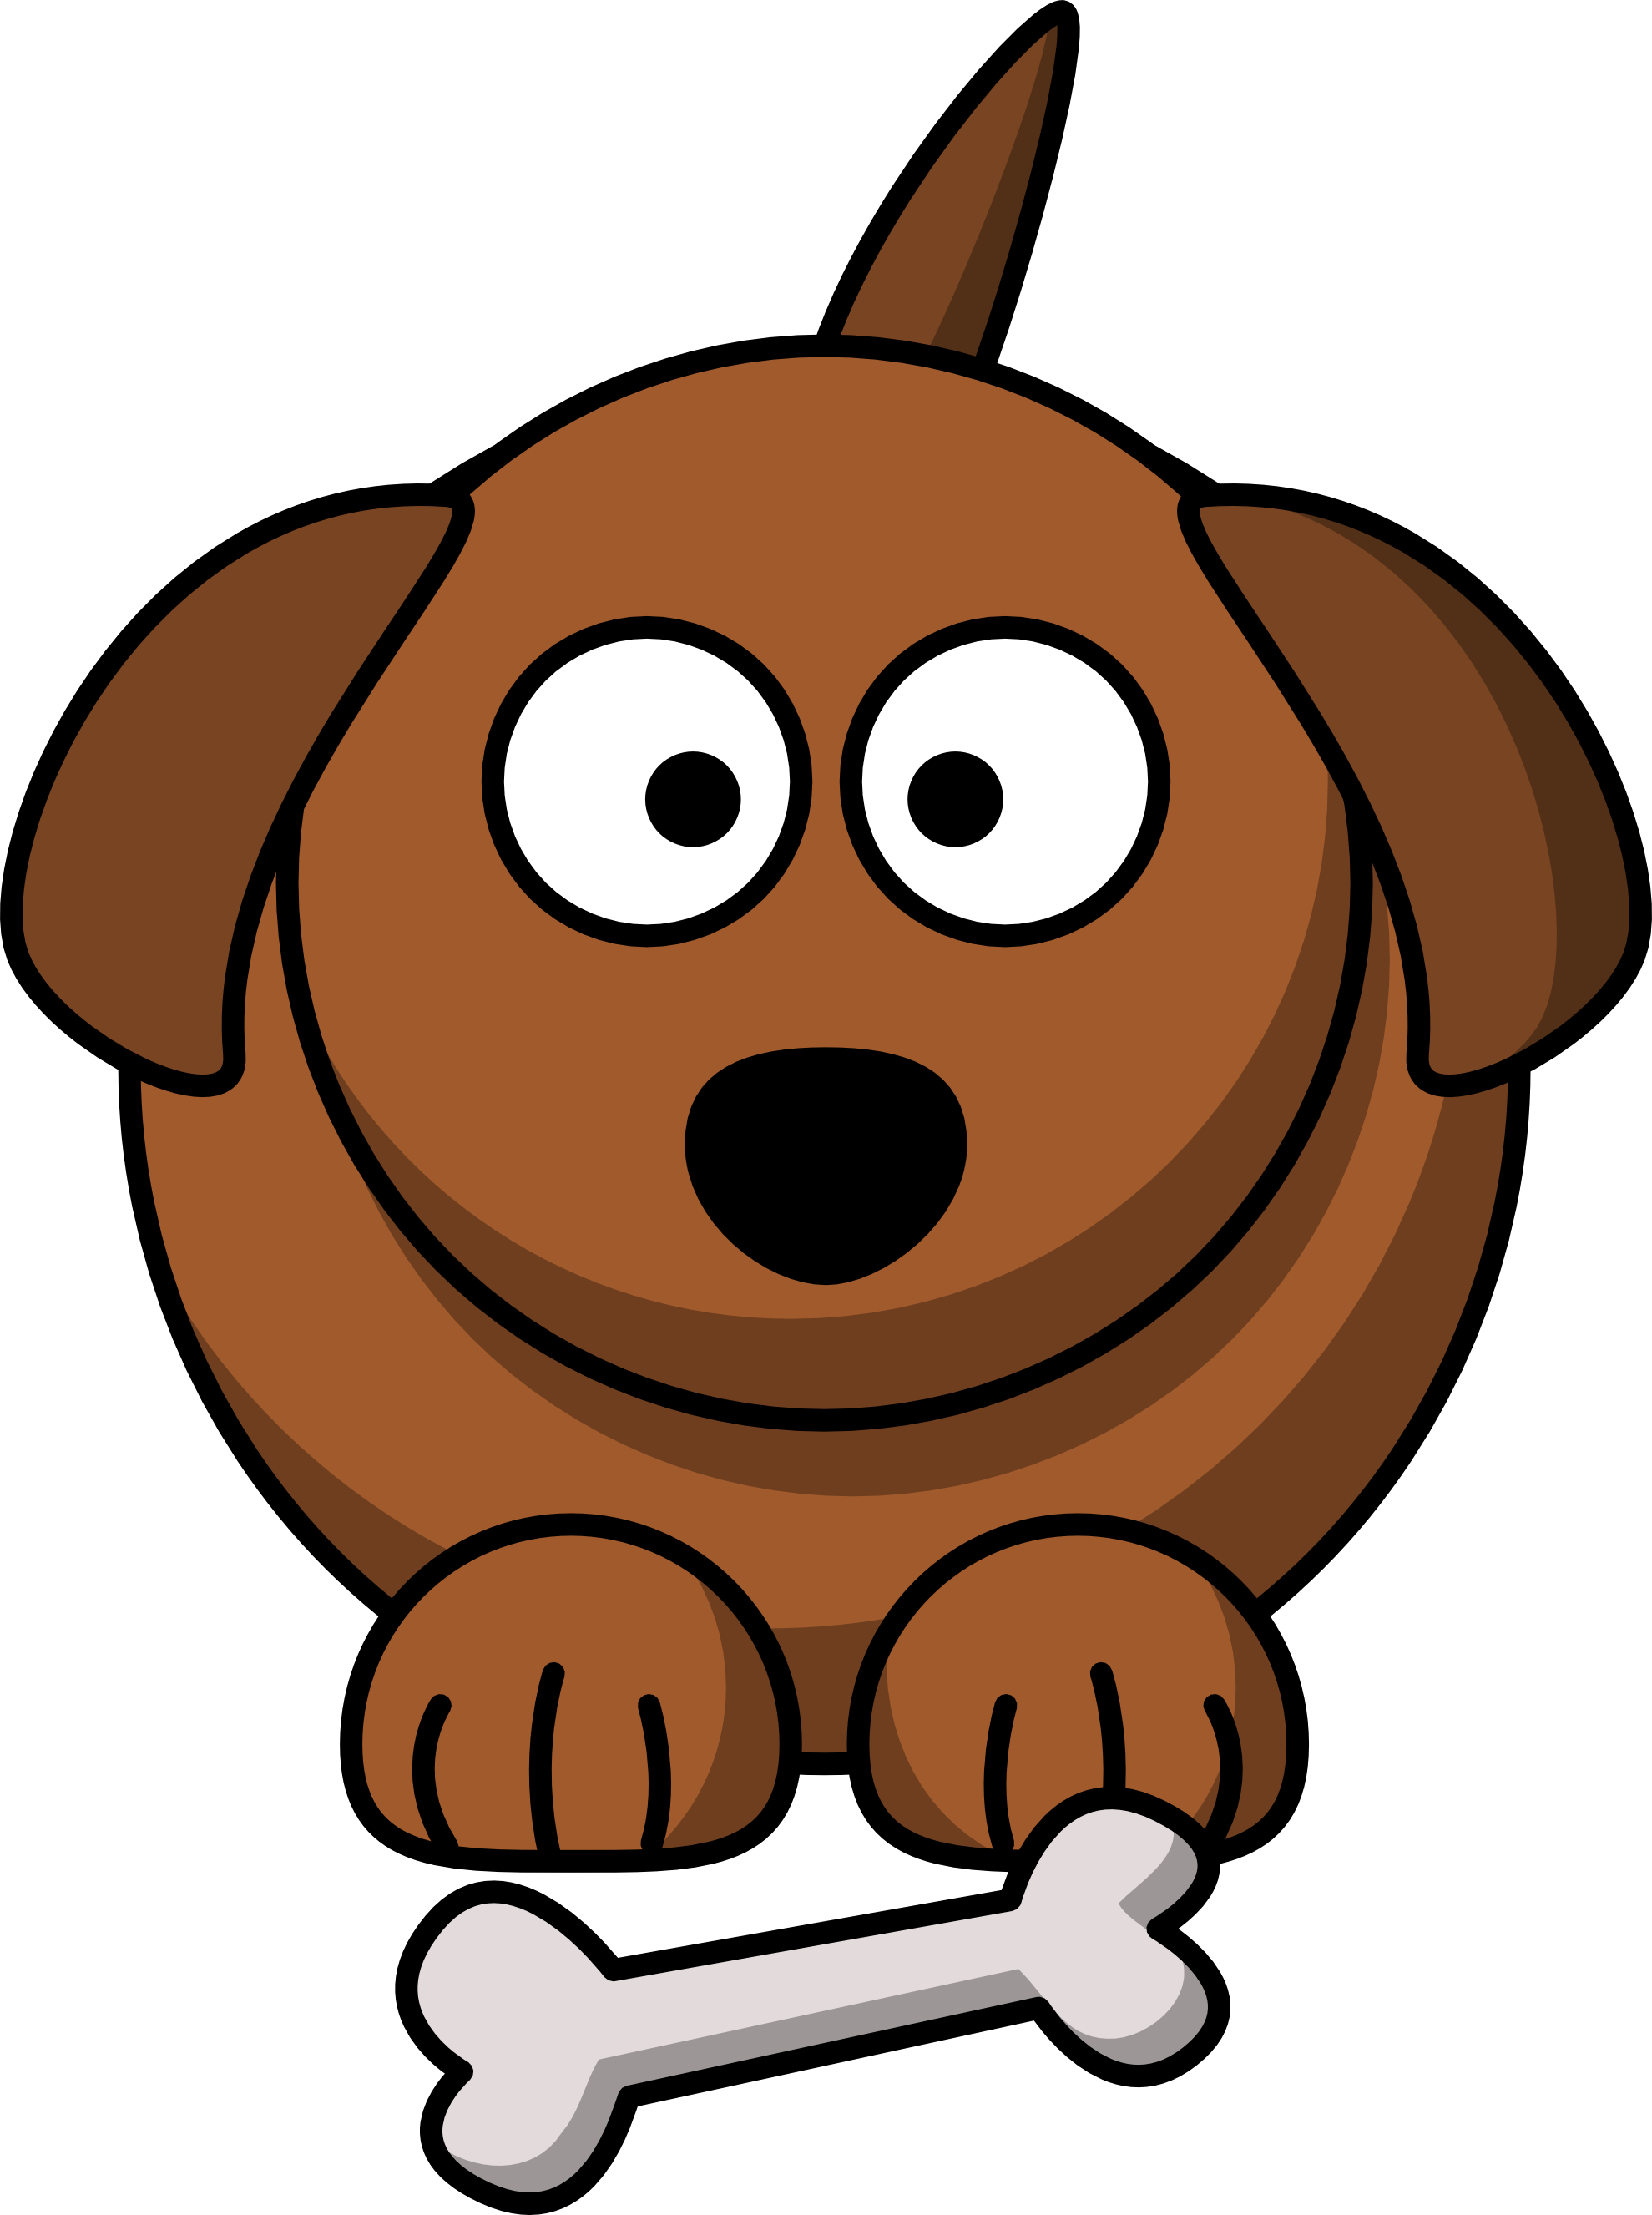 Clipart of dog playing football clip art royalty free download Free Dog Toy Cliparts, Download Free Clip Art, Free Clip Art on ... clip art royalty free download